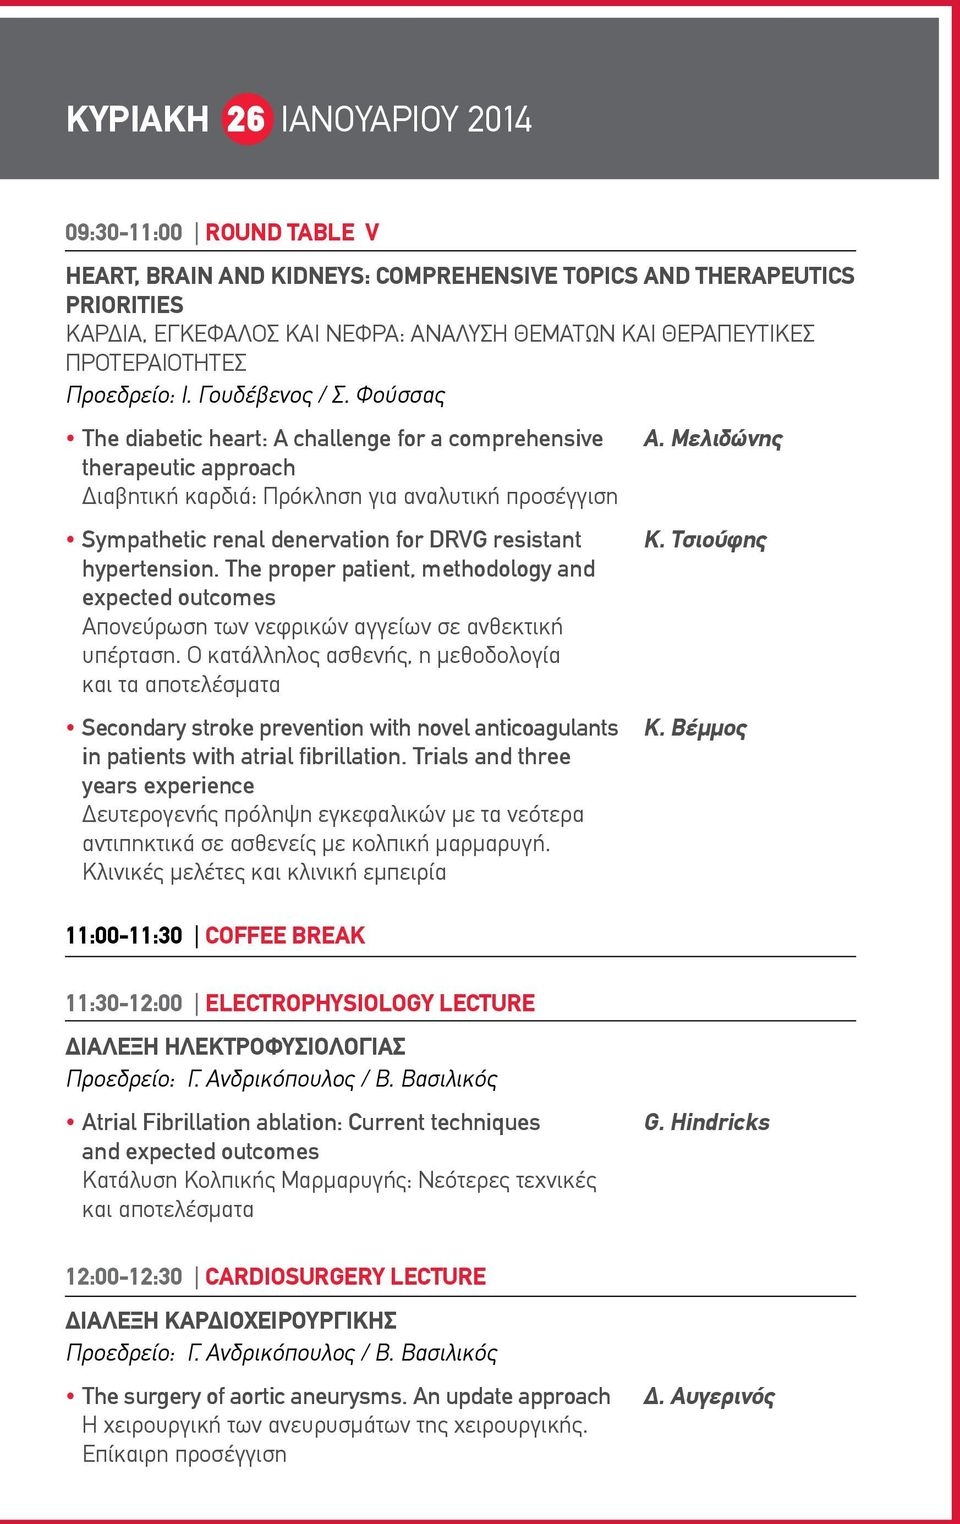 Φούσσας The diabetic heart: A challenge for a comprehensive therapeutic approach Διαβητική καρδιά: Πρόκληση για αναλυτική προσέγγιση Sympathetic renal denervation for DRVG resistant hypertension.